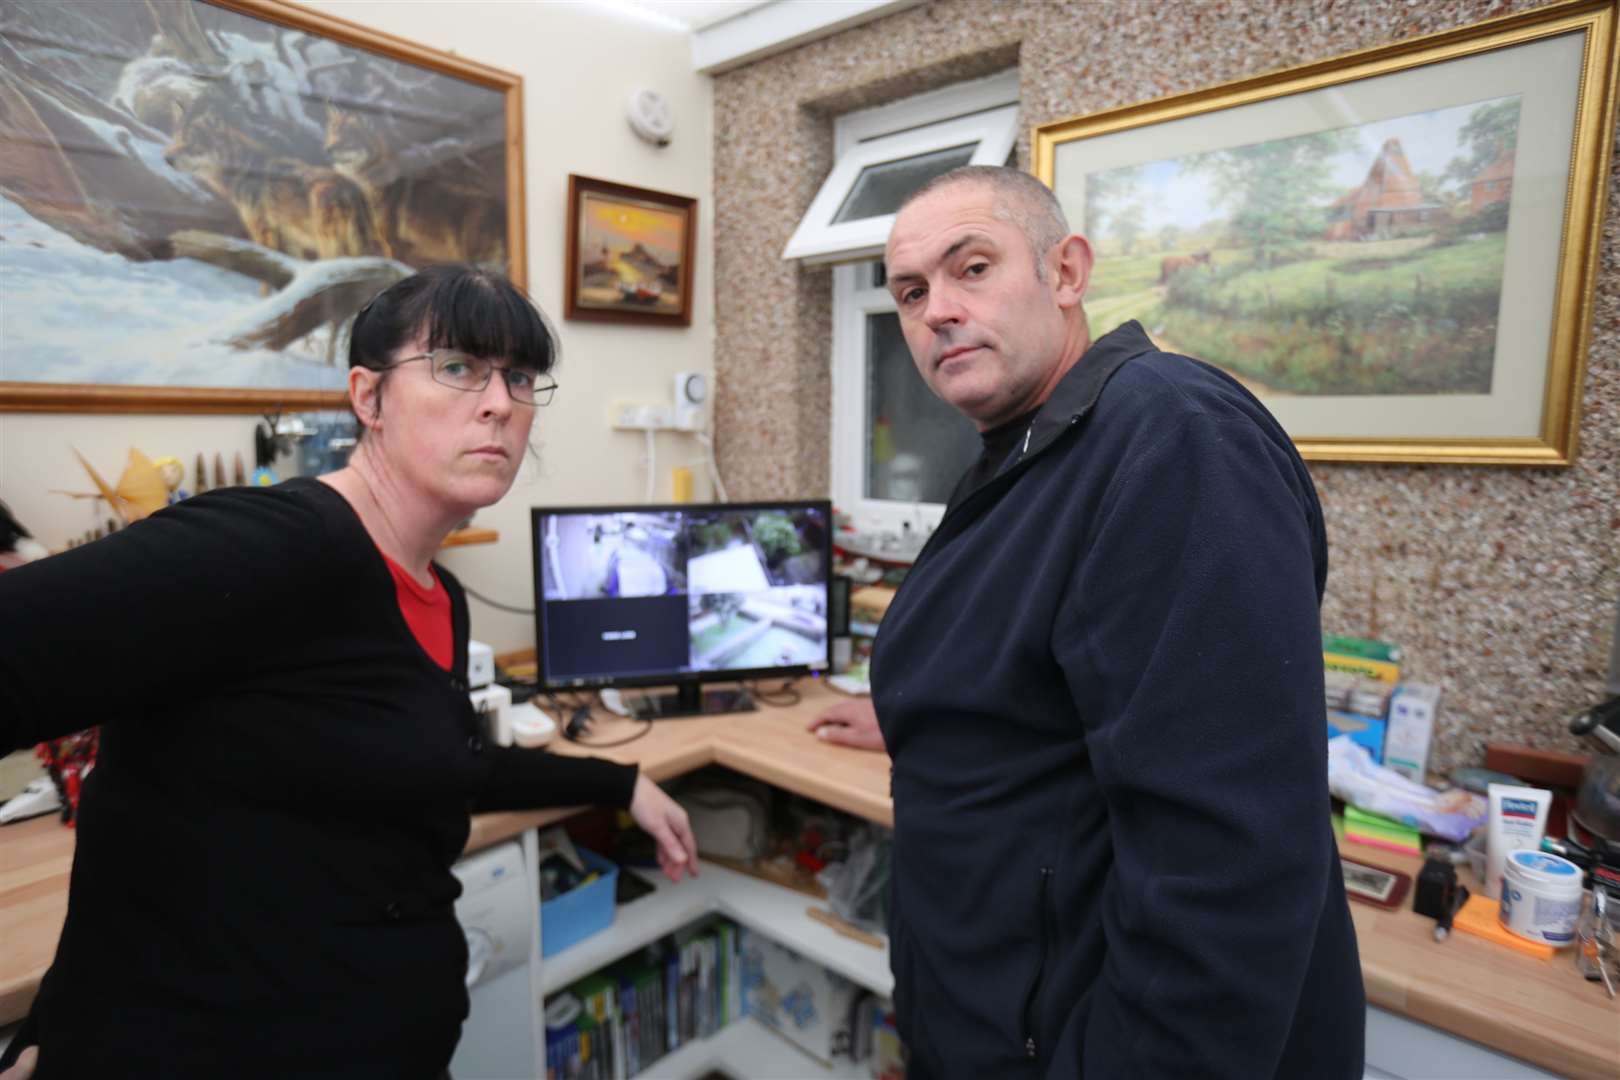 Elaine and Mark Burrows installed CCTV Picture: 5STAR